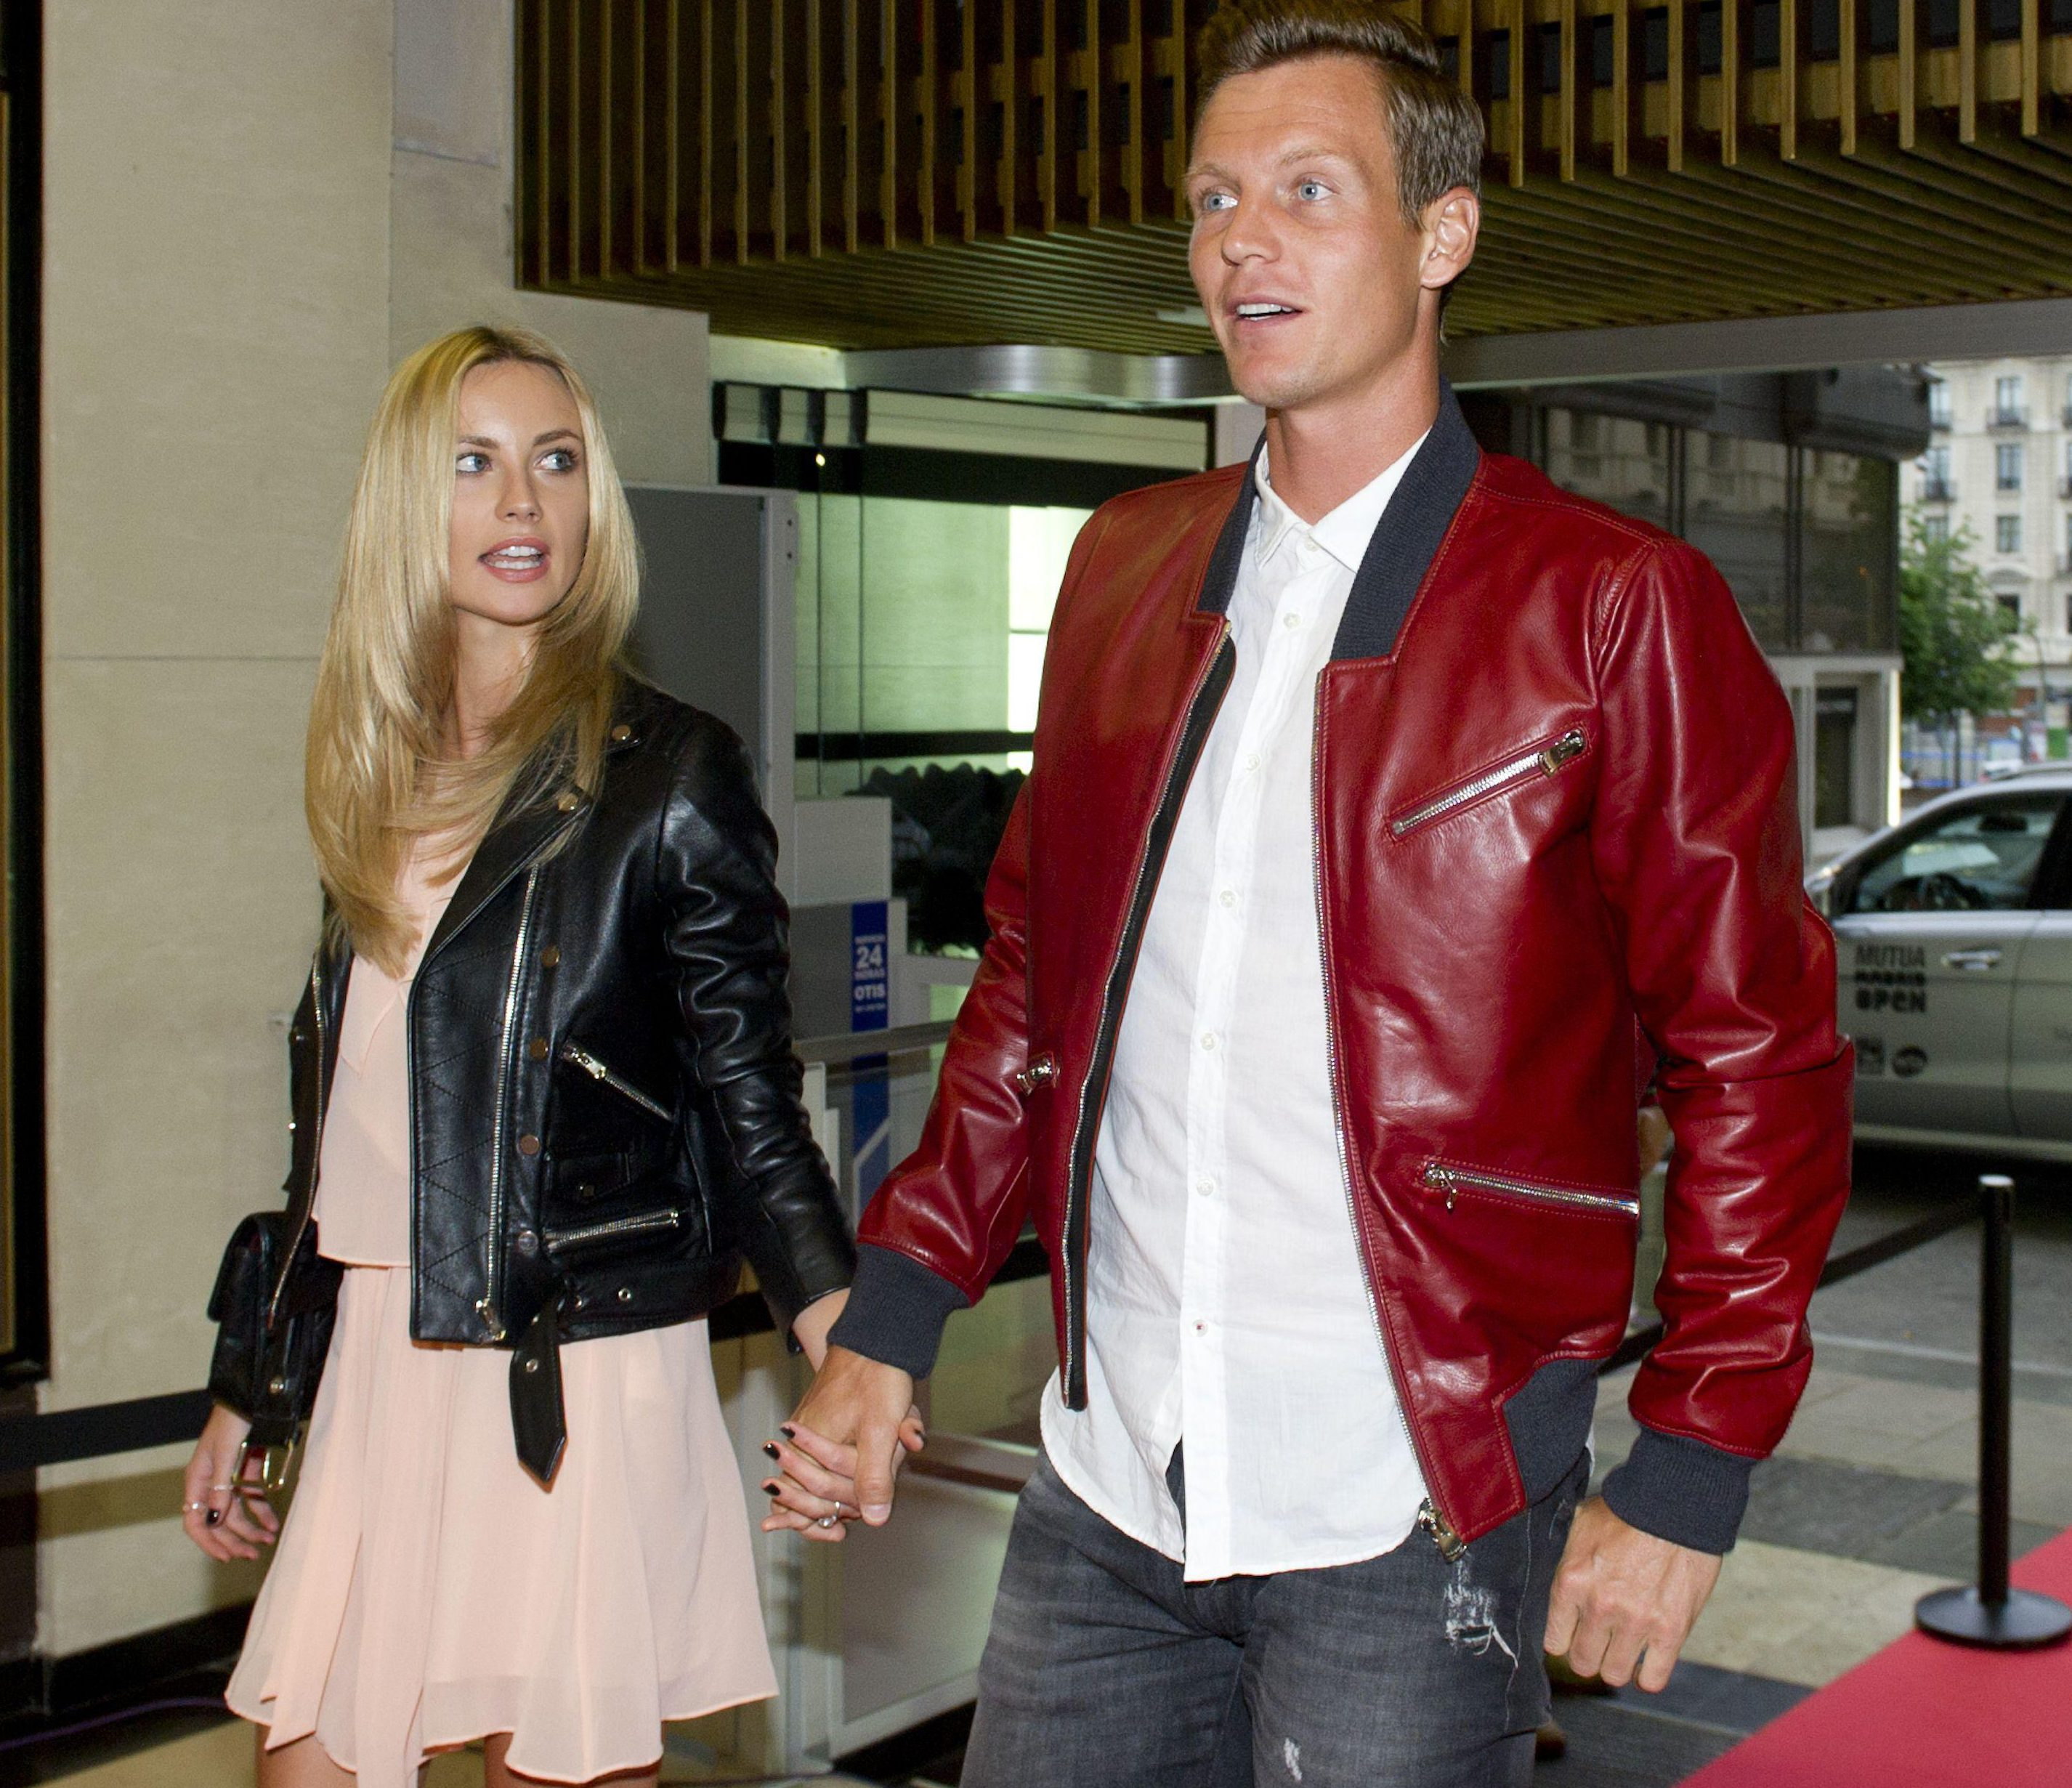 Ester and Tomas began dating in 2011 and married in an intimate ceremony in Monaco in 2015